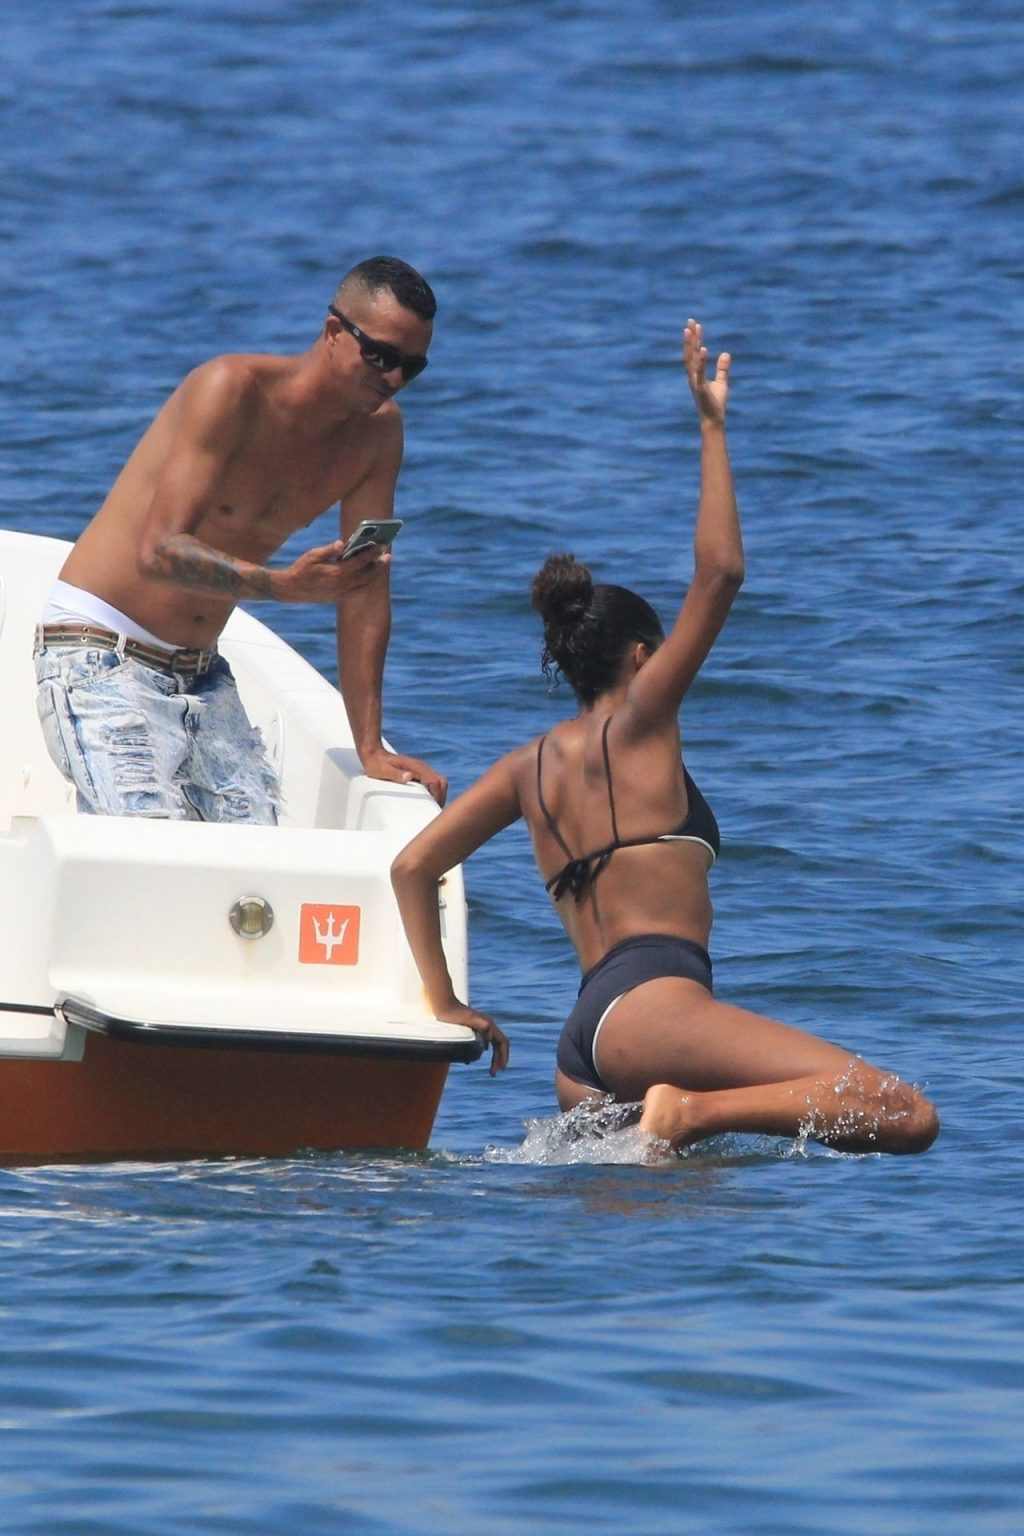 Tina Kunakey Shows Off Her Sexy Body While on Vacation With Vincent Cassel (13 Photos)